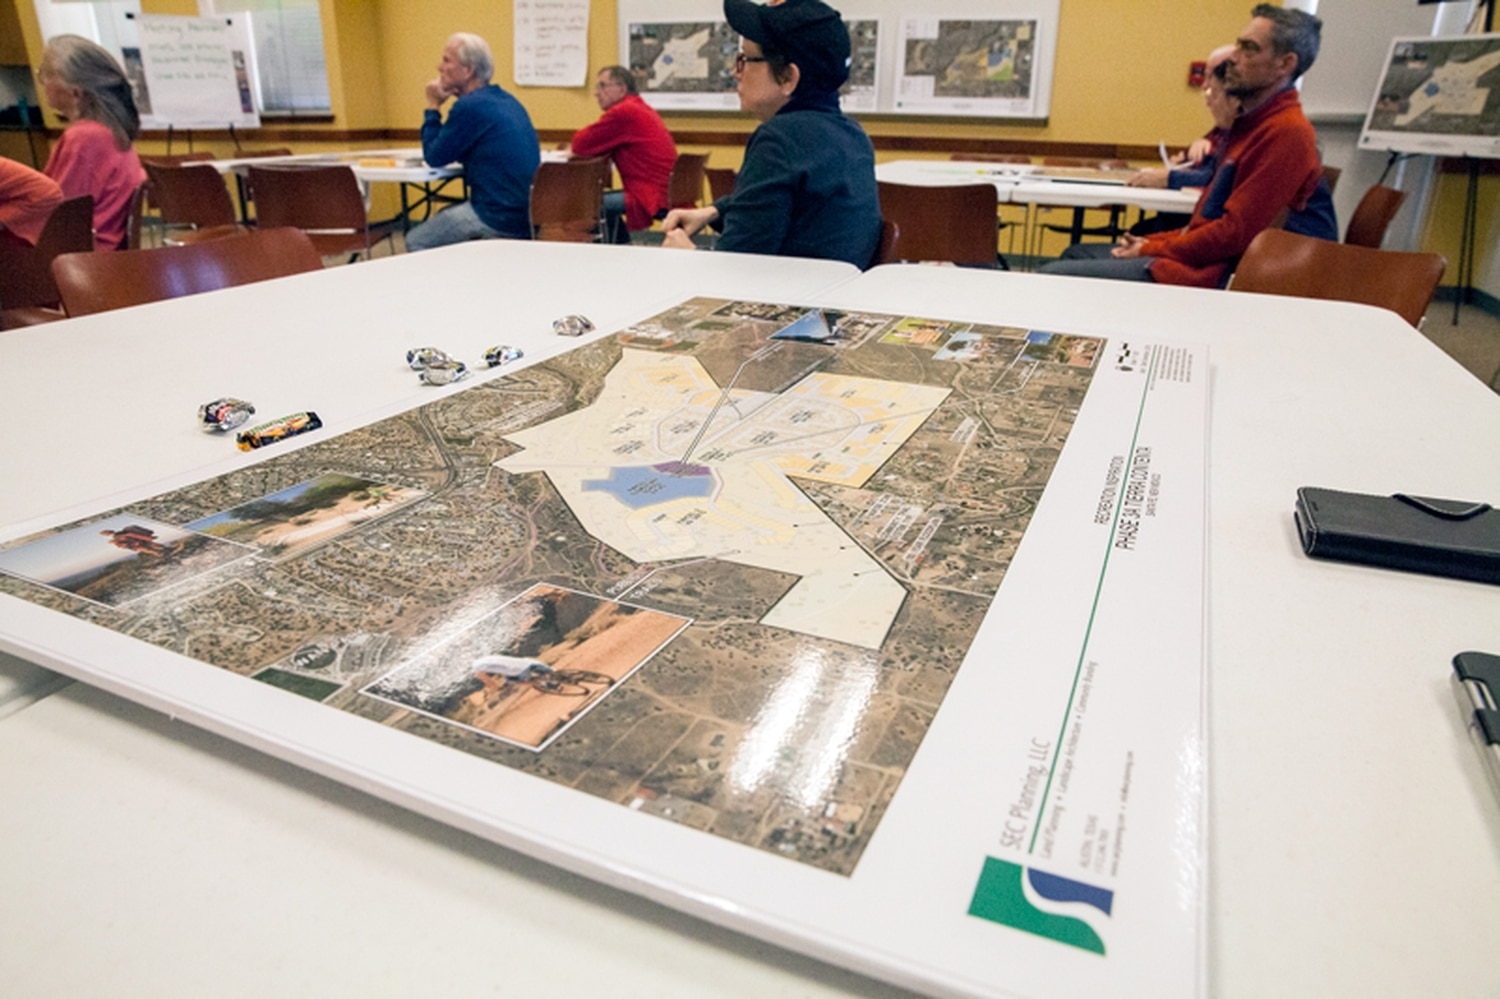 As Tierra Contenta plans its third expansion, residents worry the development will not positively impact Airport Road.